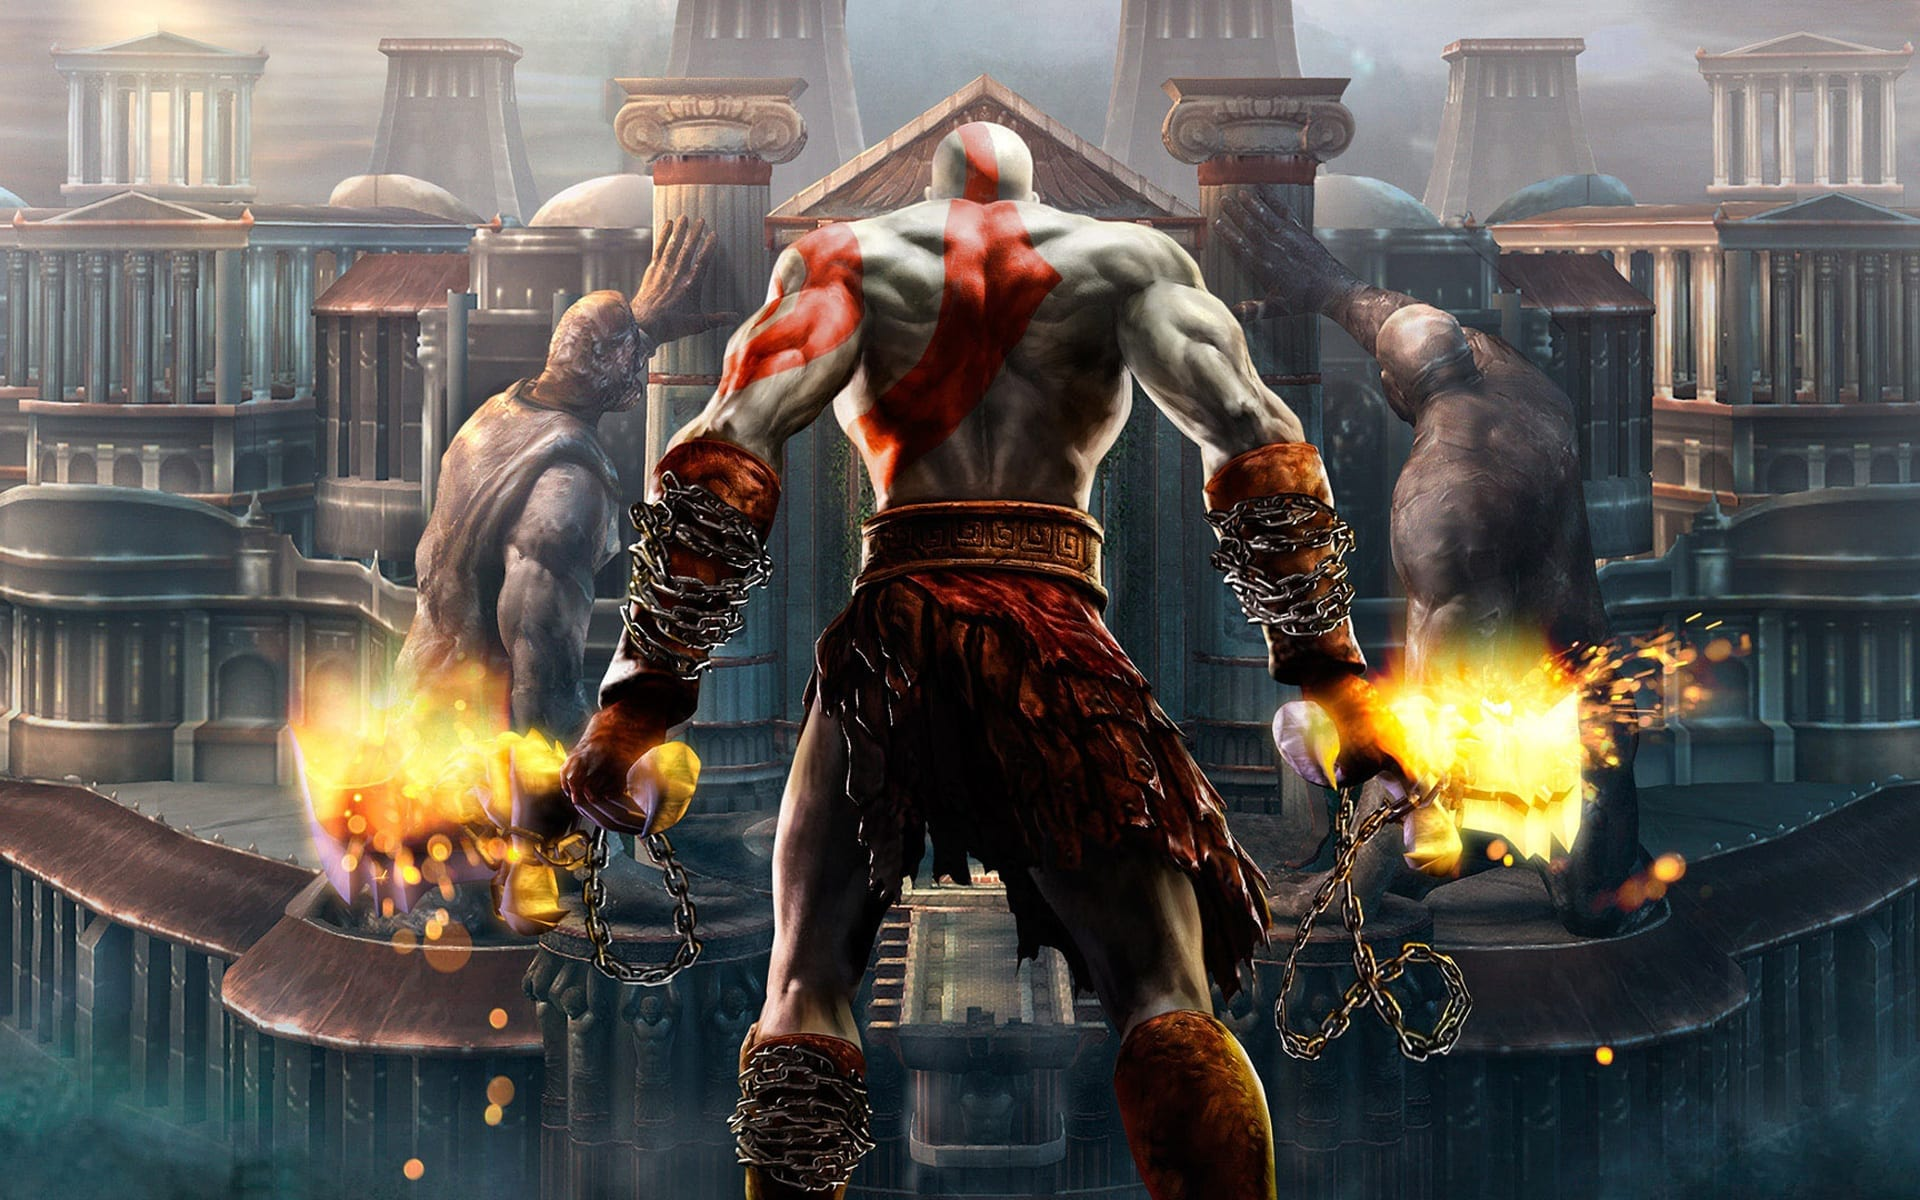 God of War: The History and Future of the Series